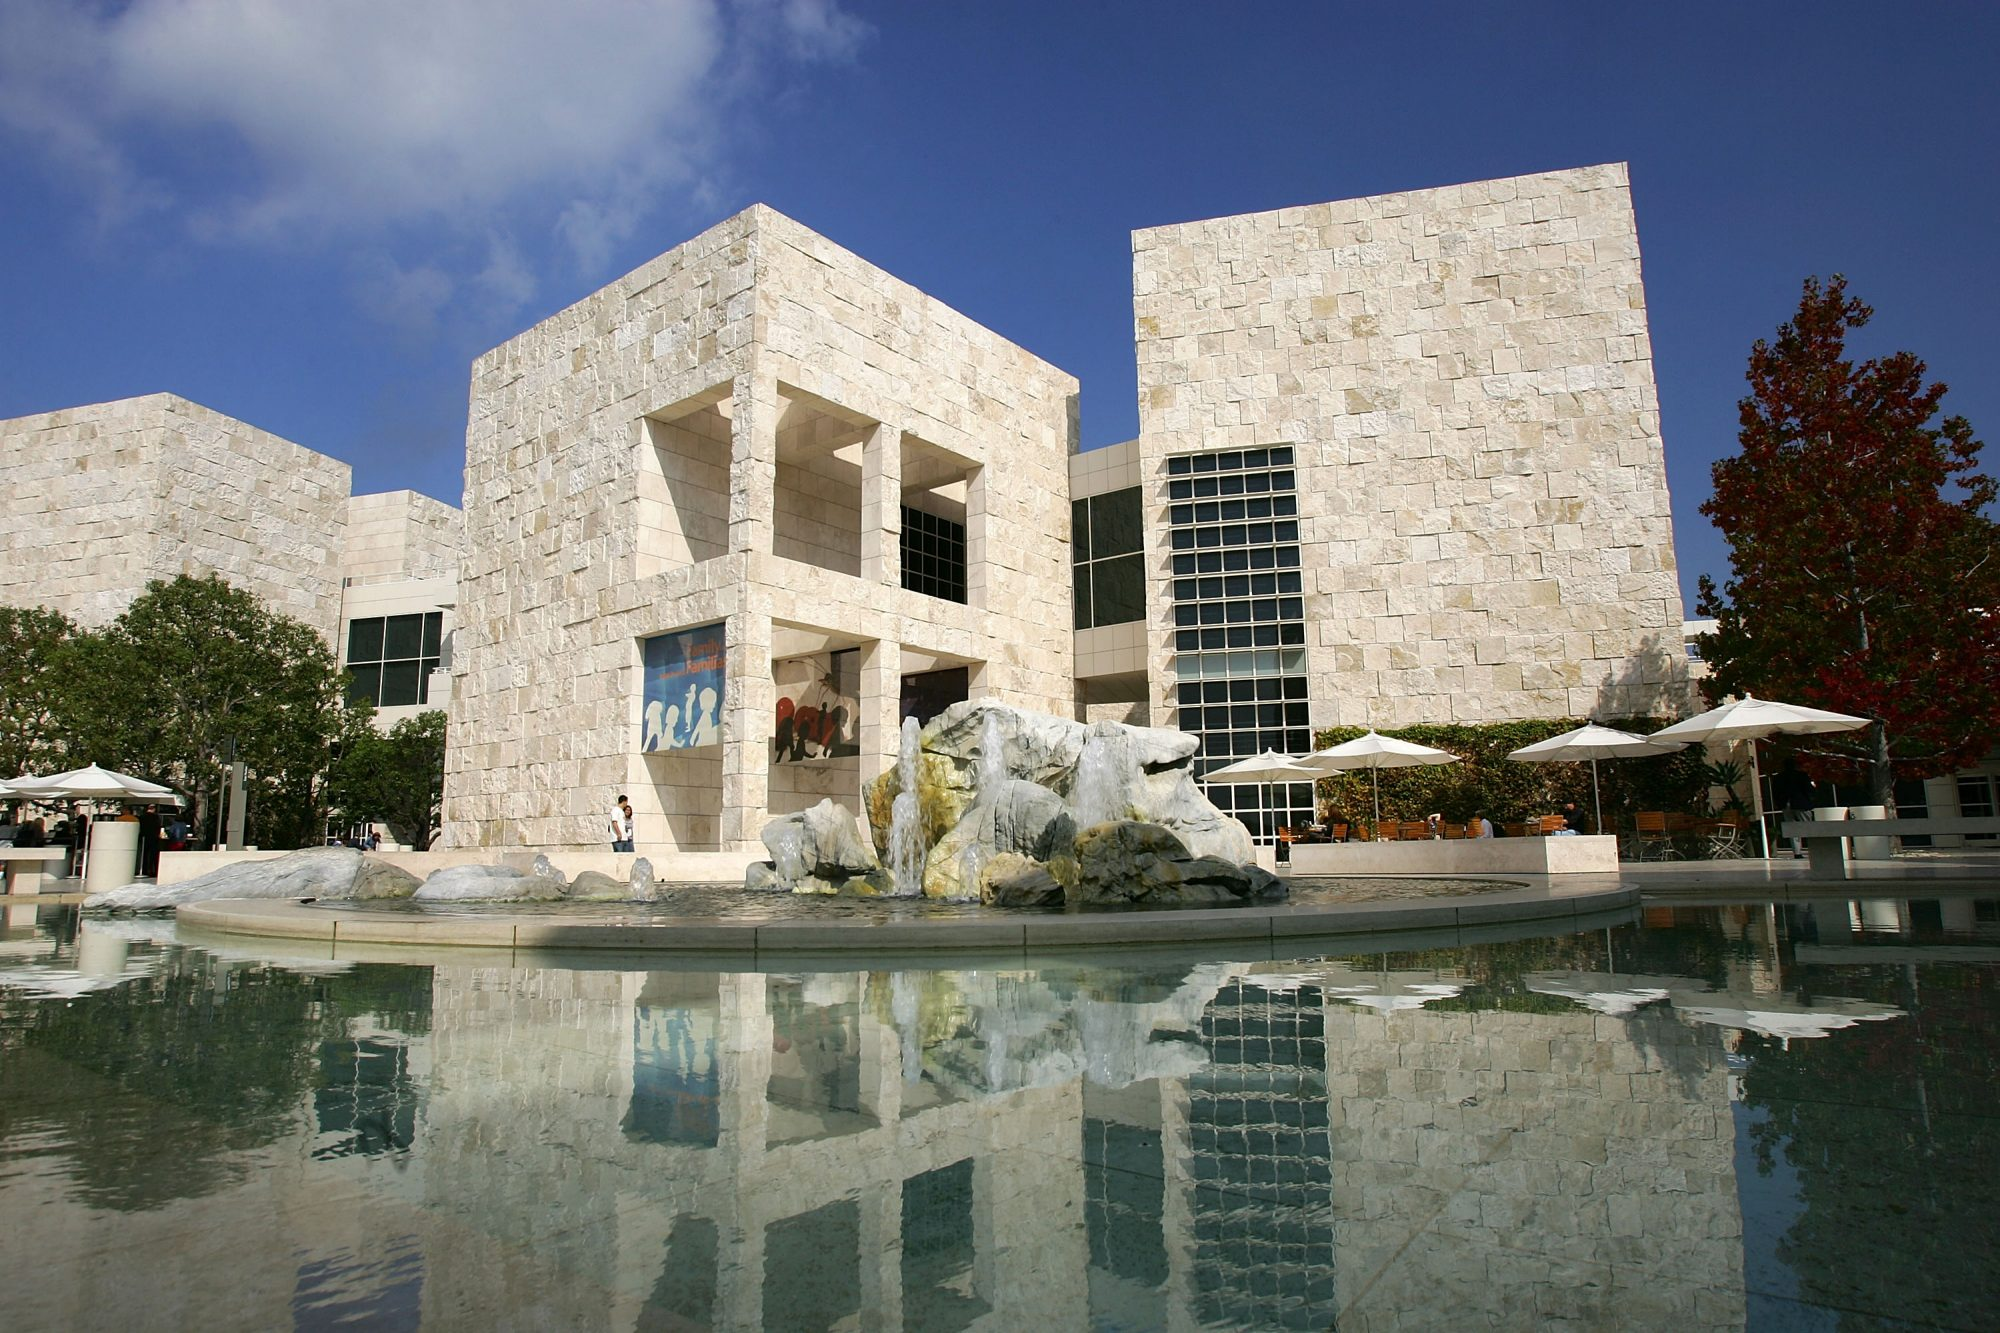 The Getty Museum of Los Angeles